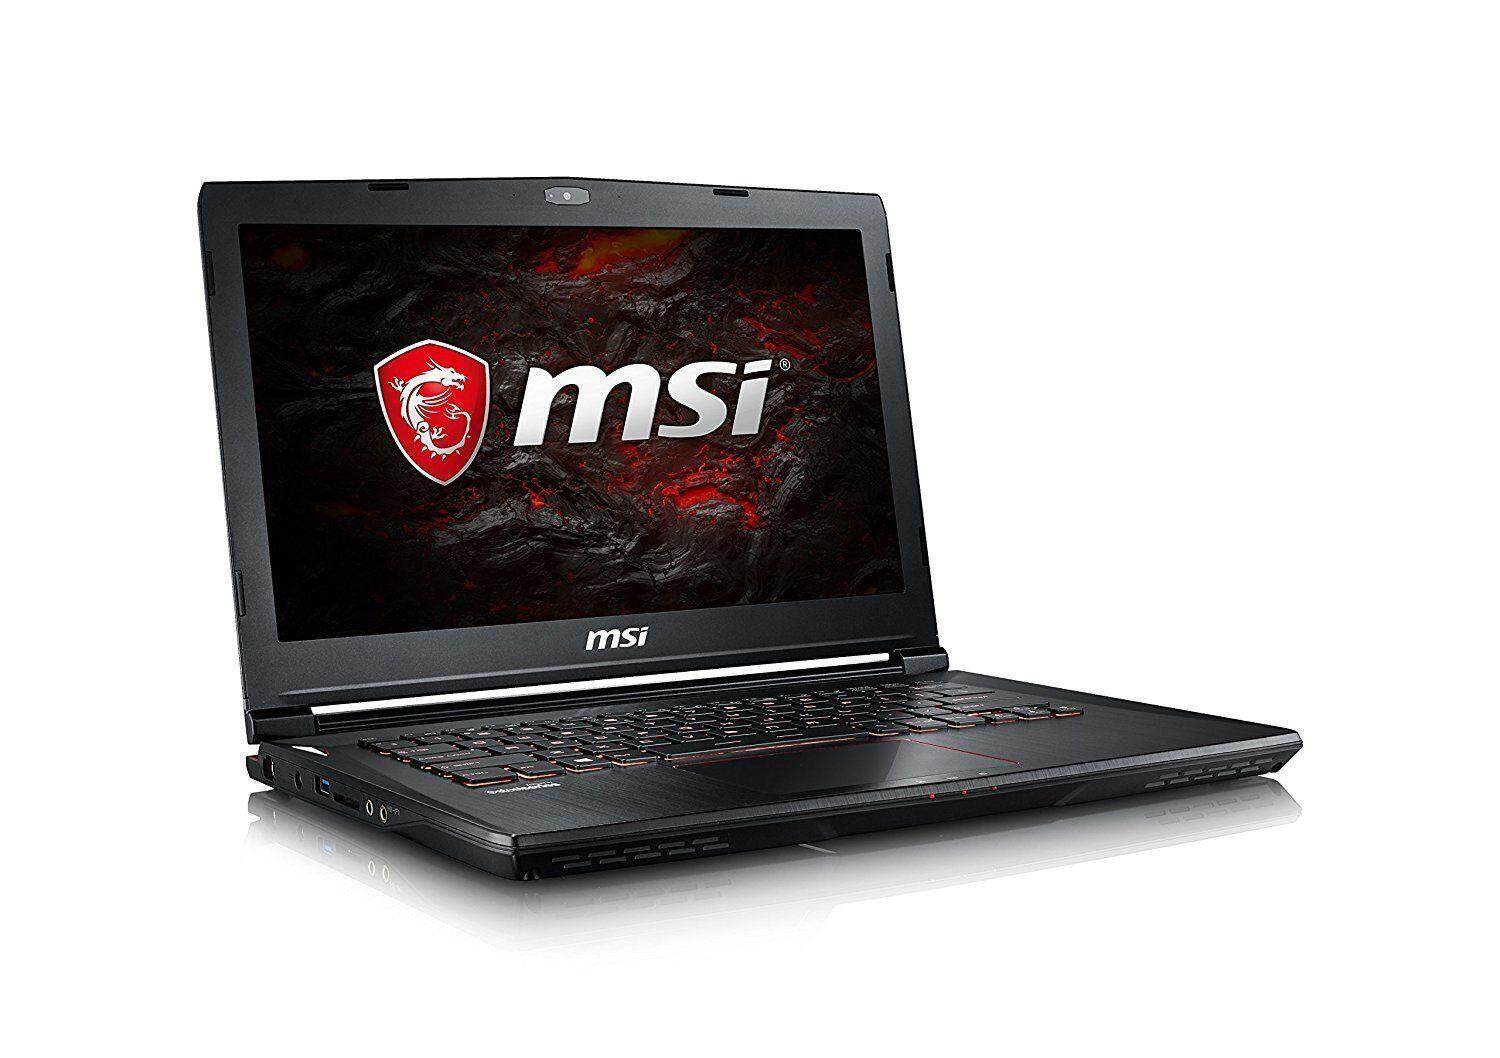 MSI GS43VR Phantom Pro-069 14 Intel Core i7 7th Gen., 2.80GHz, 32GB RAM Malaysia